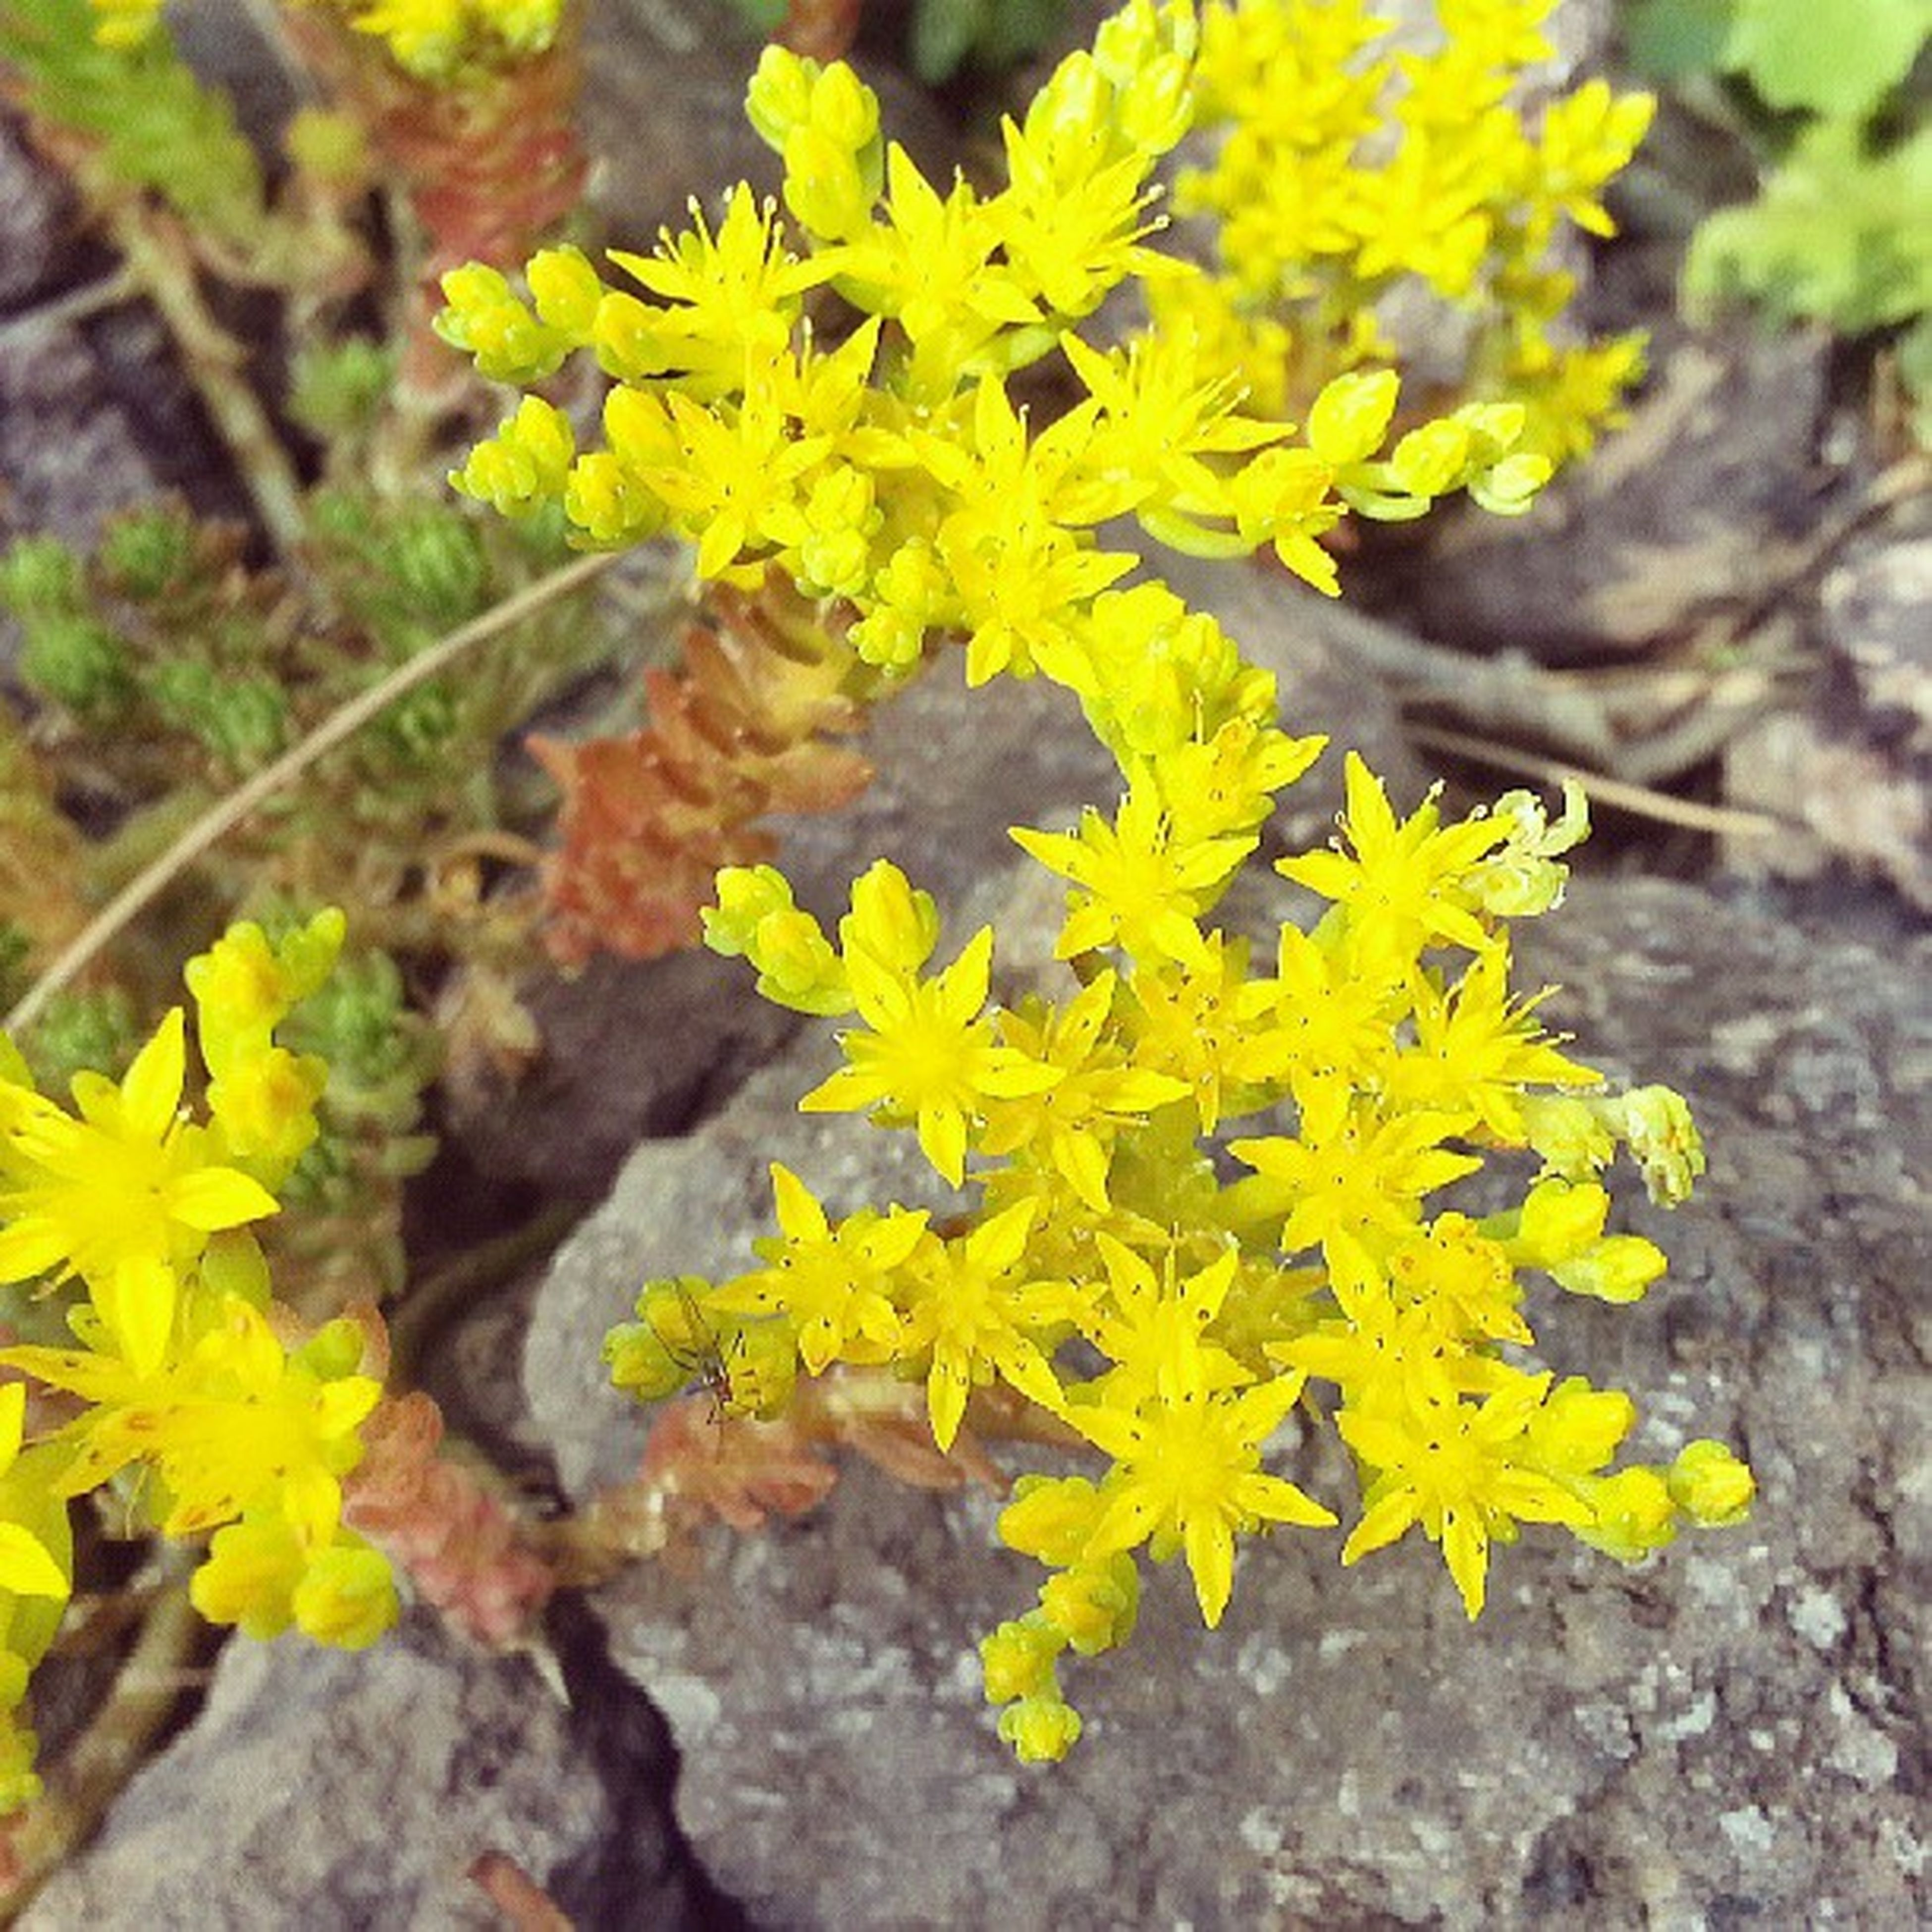 flower, yellow, fragility, growth, freshness, petal, beauty in nature, nature, plant, high angle view, close-up, flower head, blooming, focus on foreground, leaf, day, in bloom, field, outdoors, no people